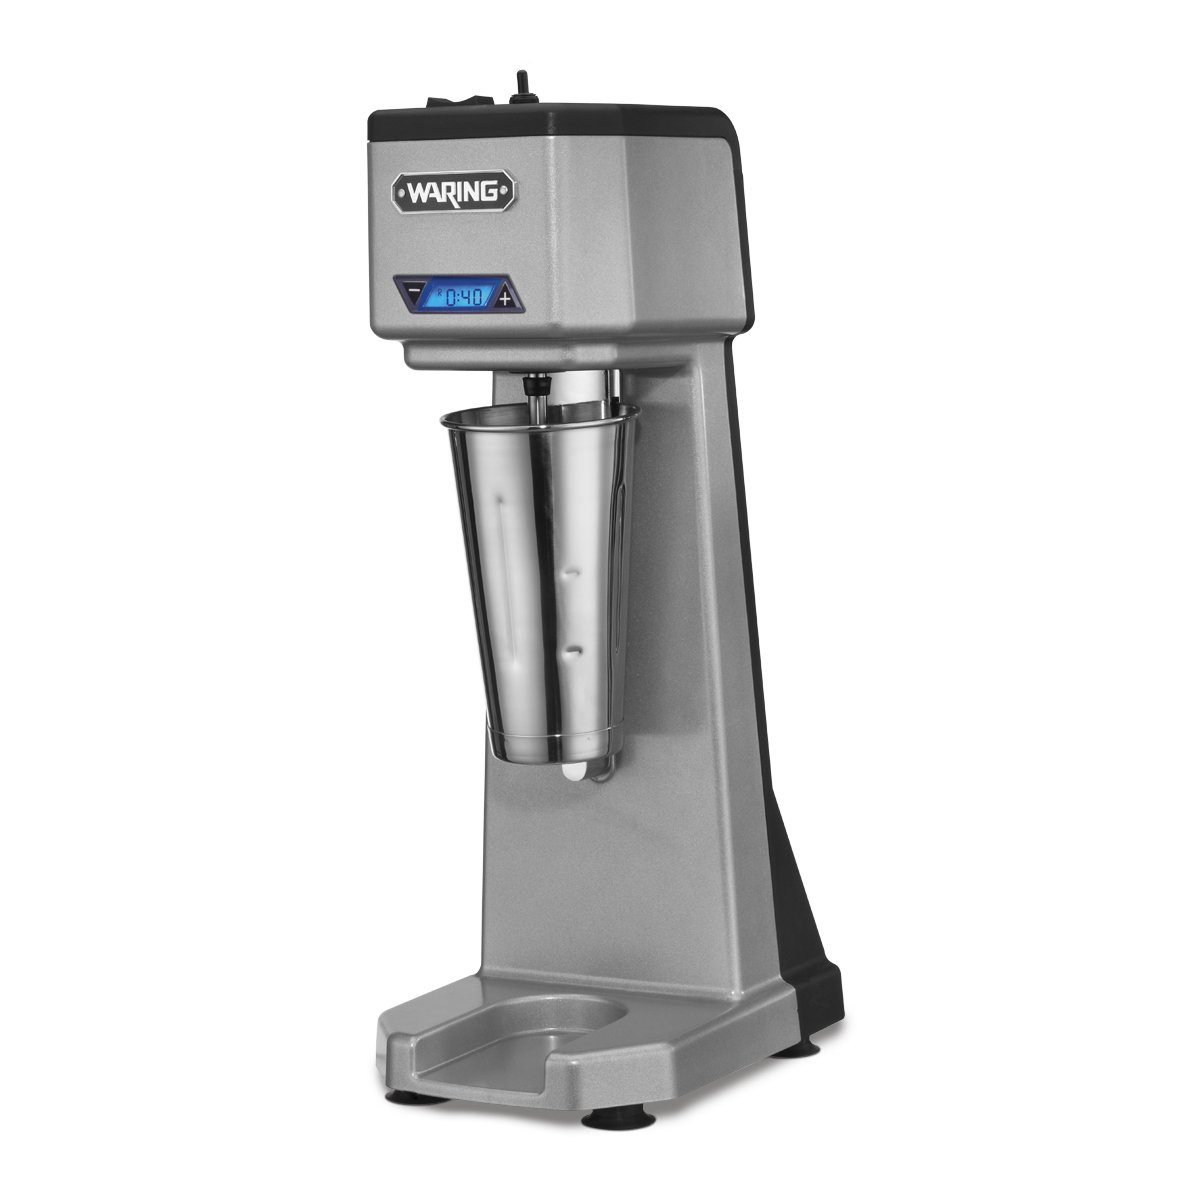 Waring Commercial WDM120T Single Head Drink Mixer with Timer, Silver